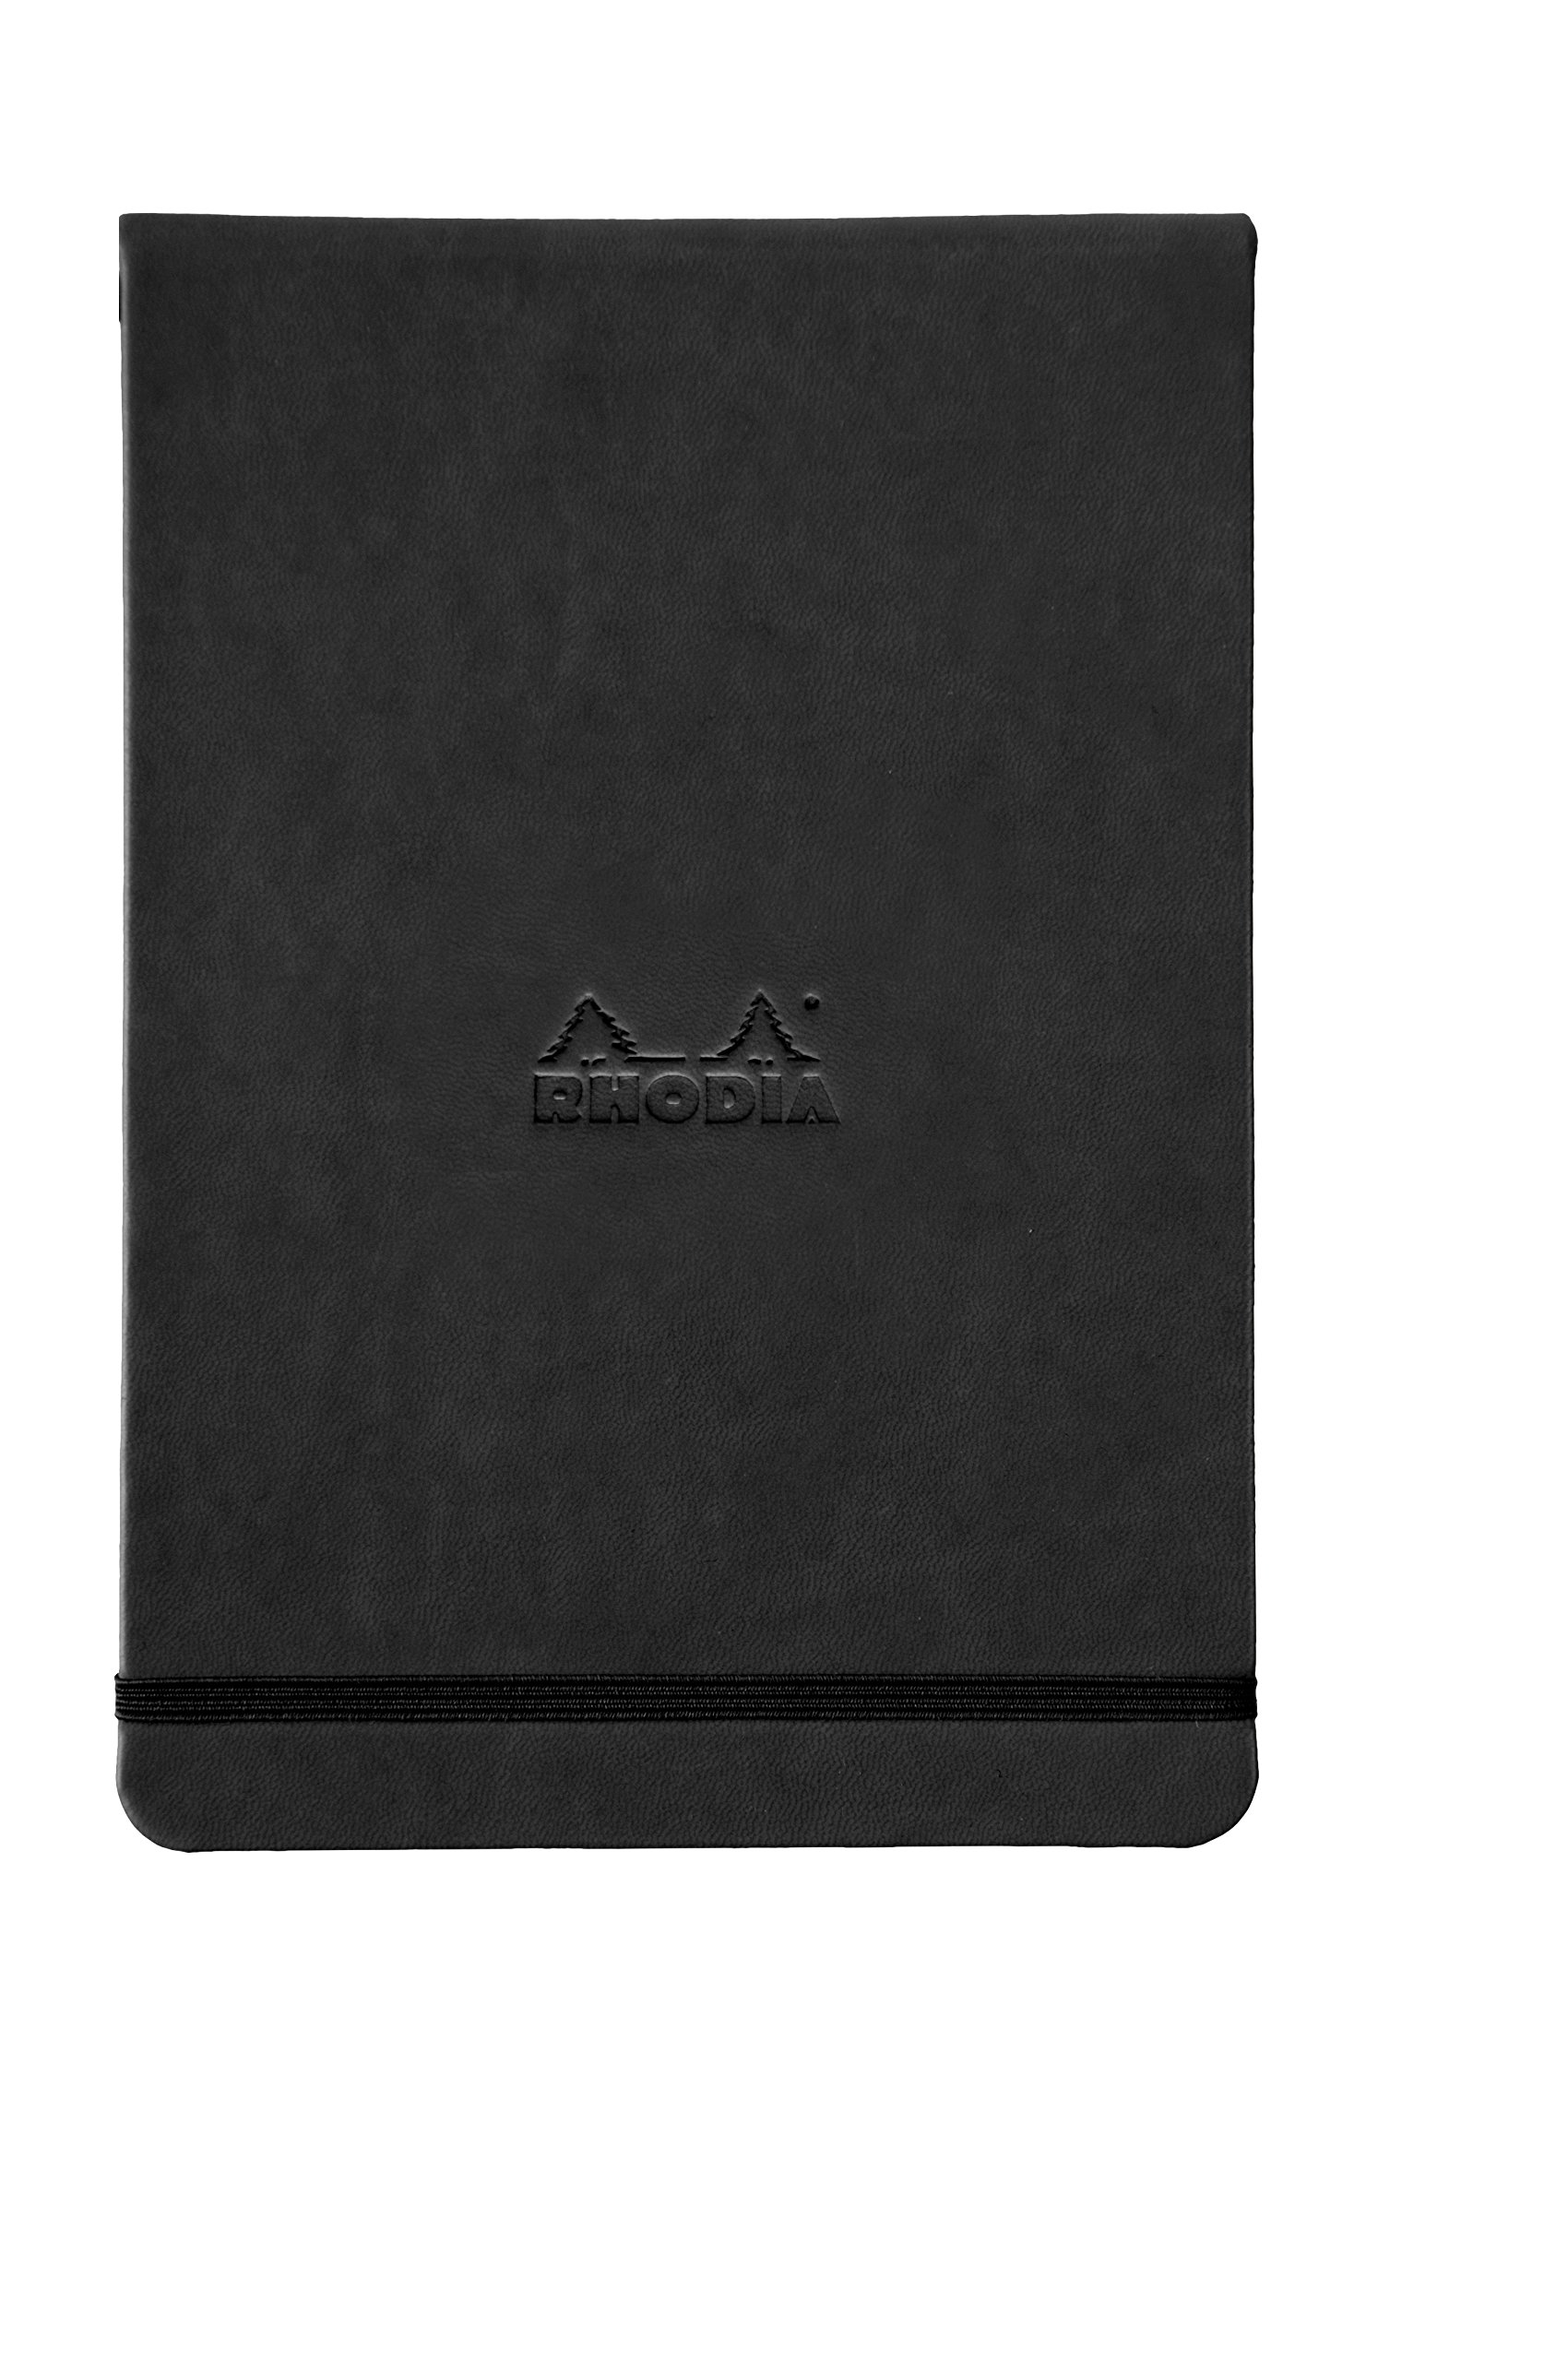 Rhodia Webnotepad Webbies - Lined 96 sheets - 5 1/2 x 8 1/4 - Black Cover by Rhodia